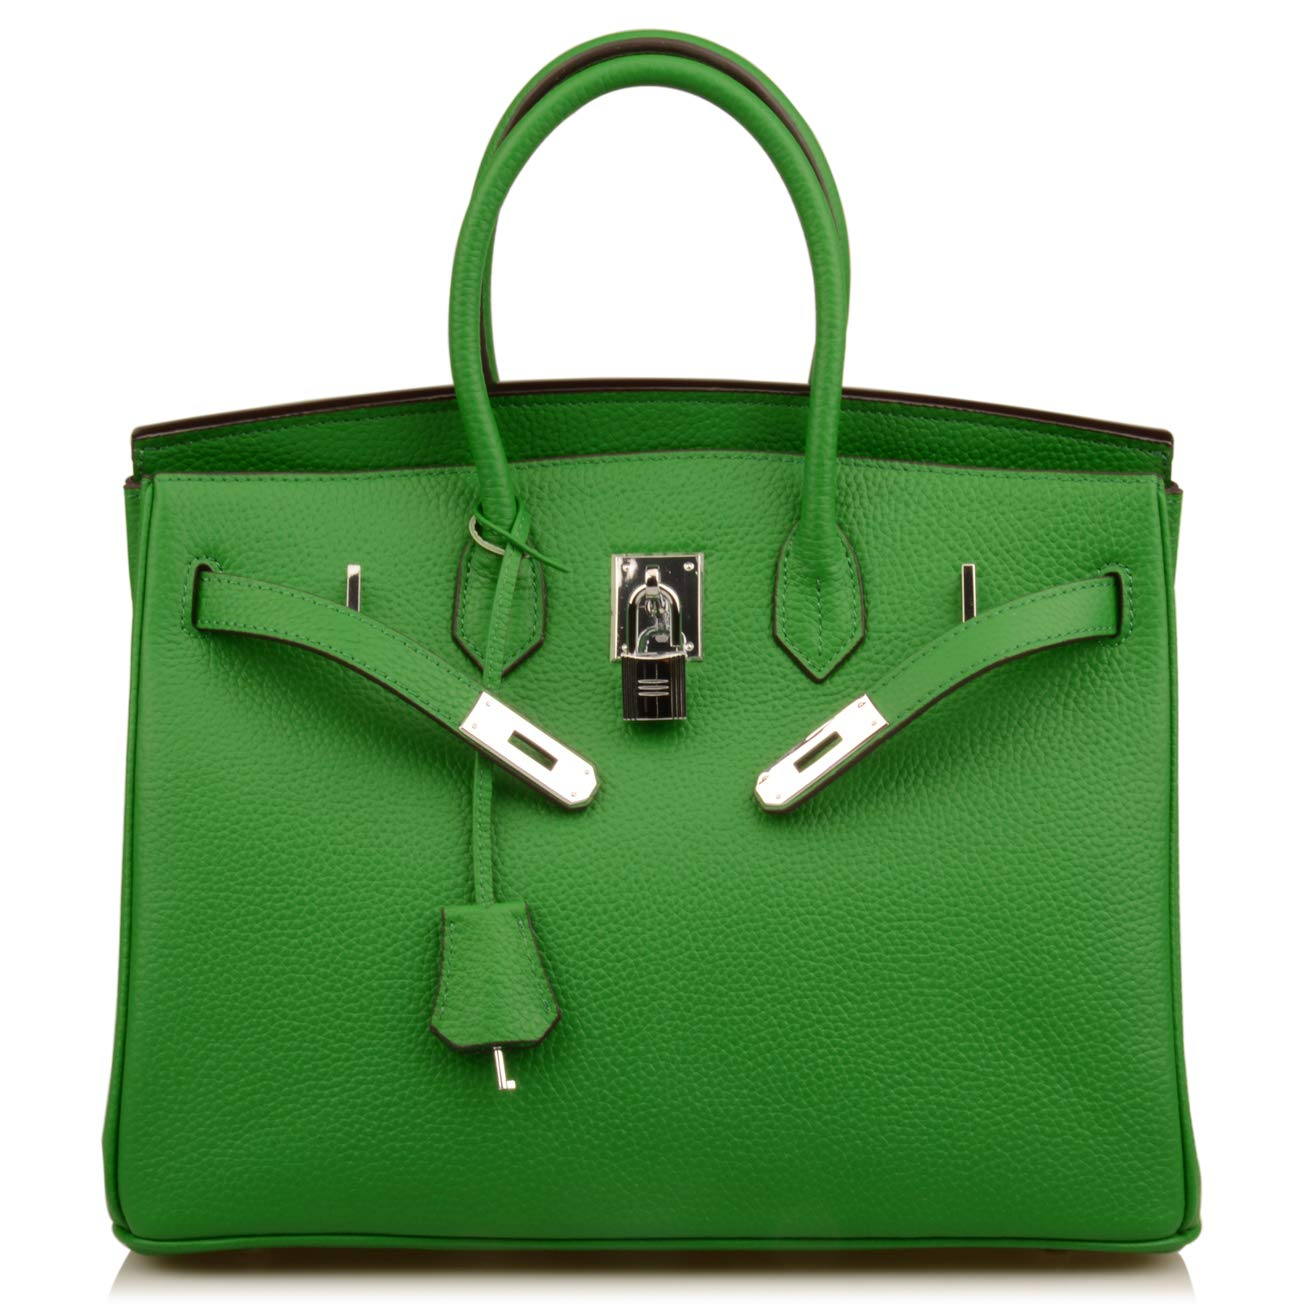 Qidell Women's Padlock Handbags With Silver Hardware On Clearance (35 cm.Bamboo green)